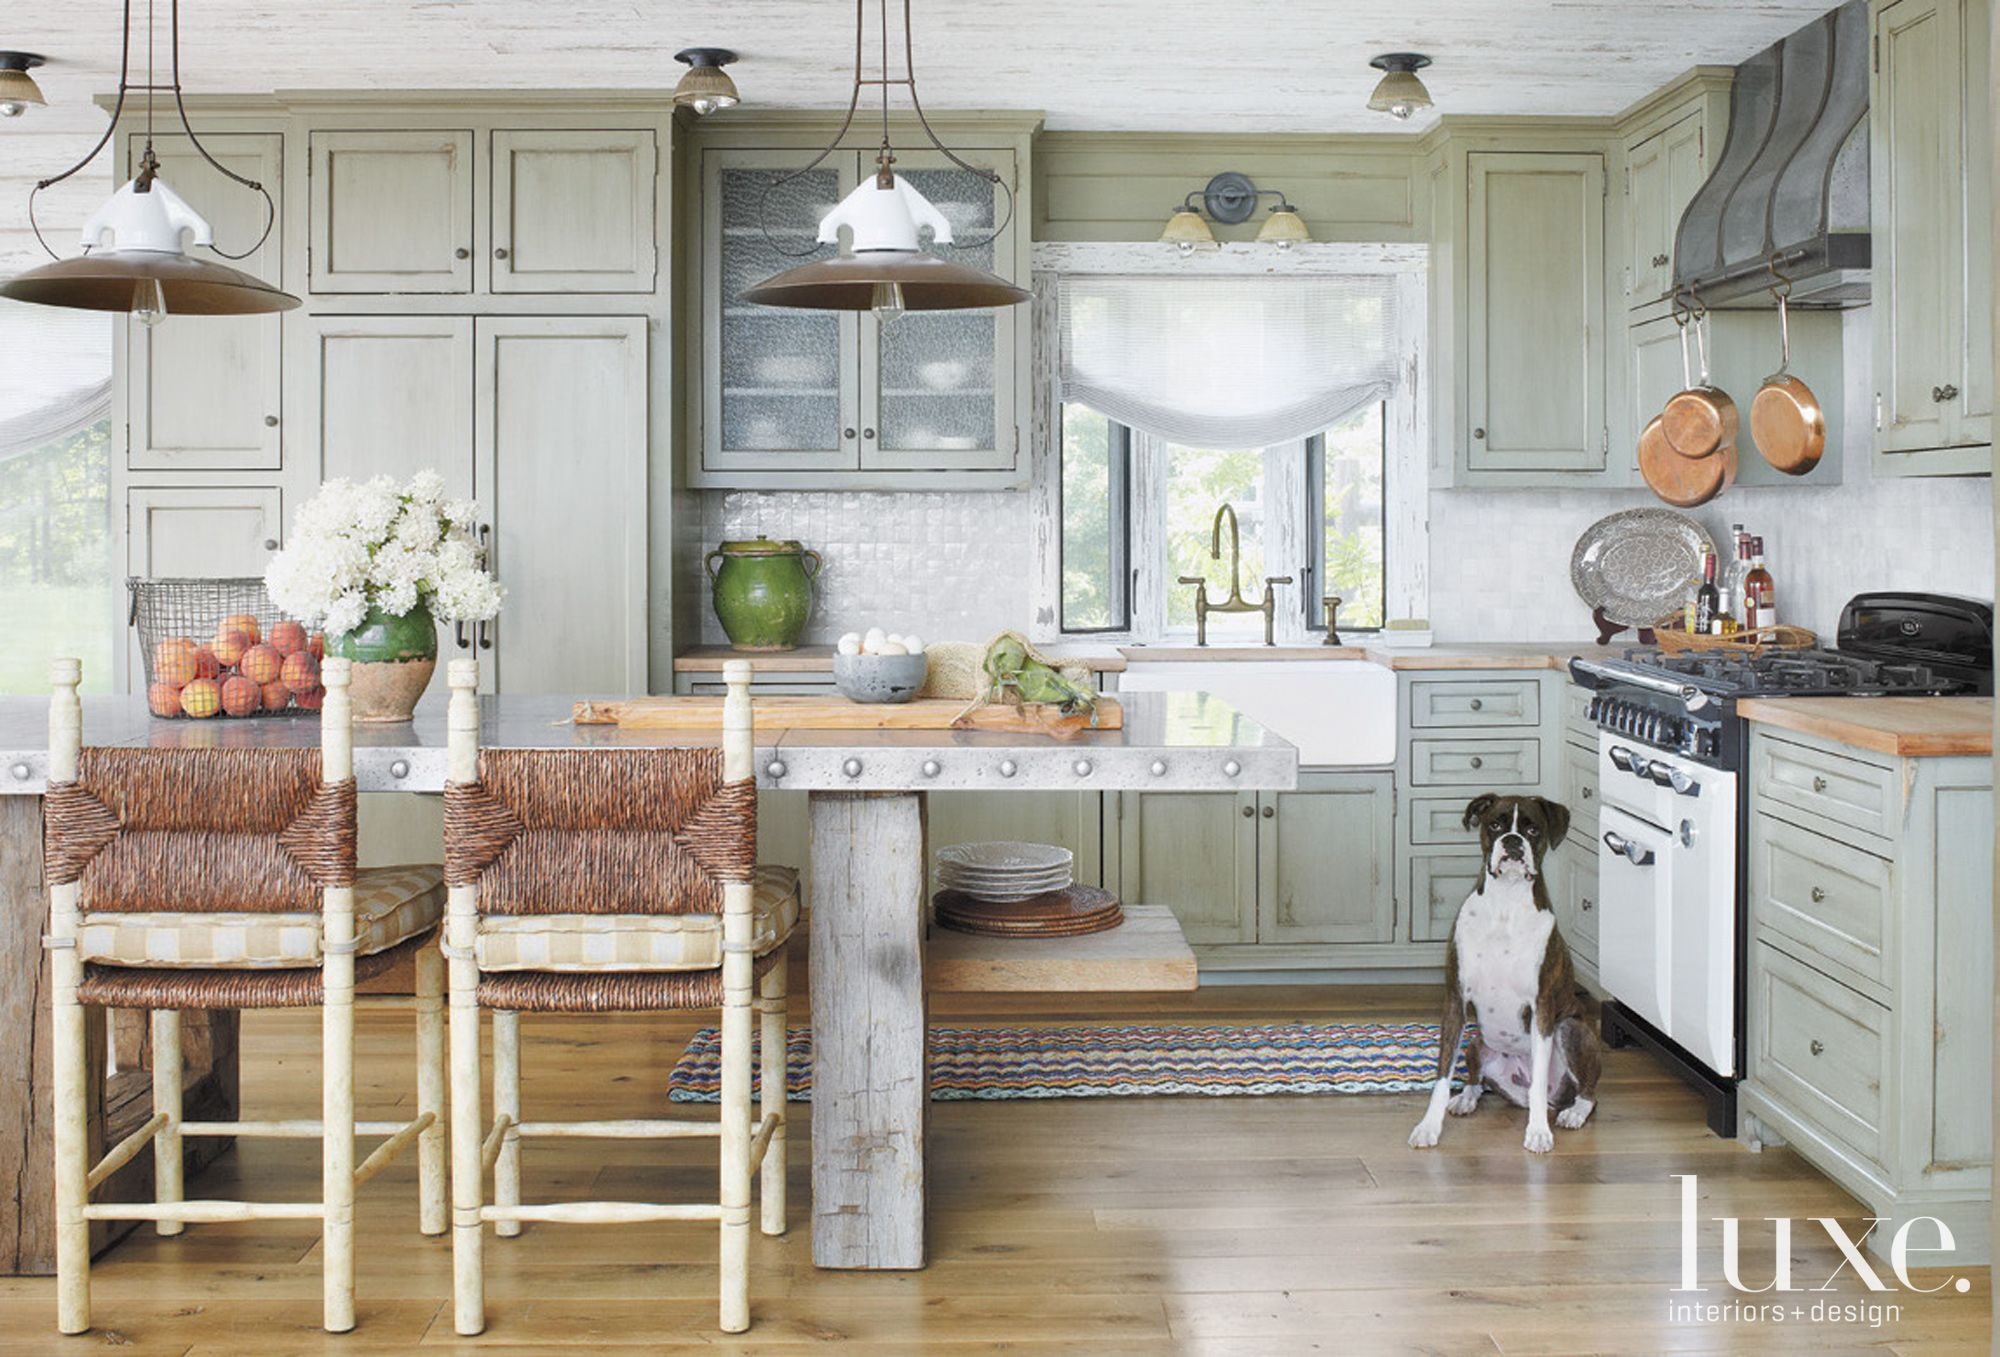 Country Green Kitchen with Tile Backsplash